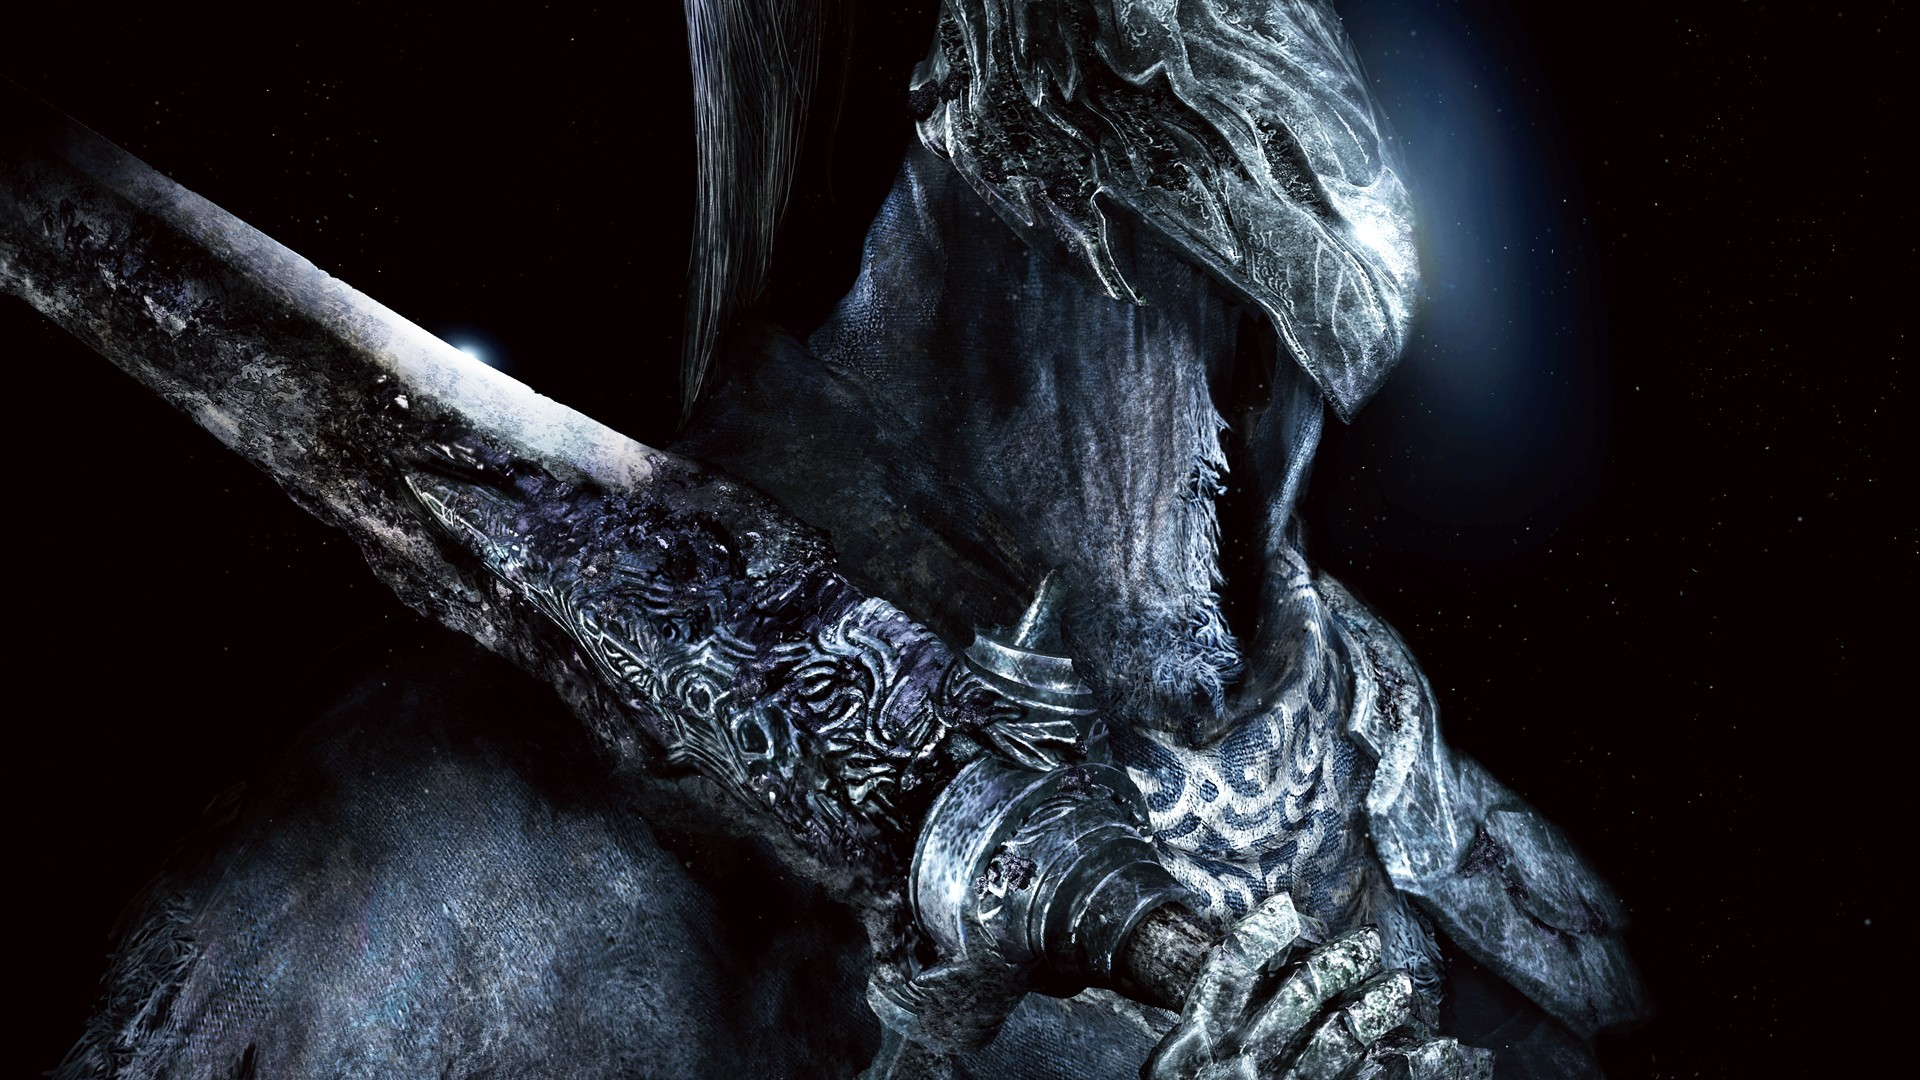 Dark Souls Artorias Wallpaper 1080p